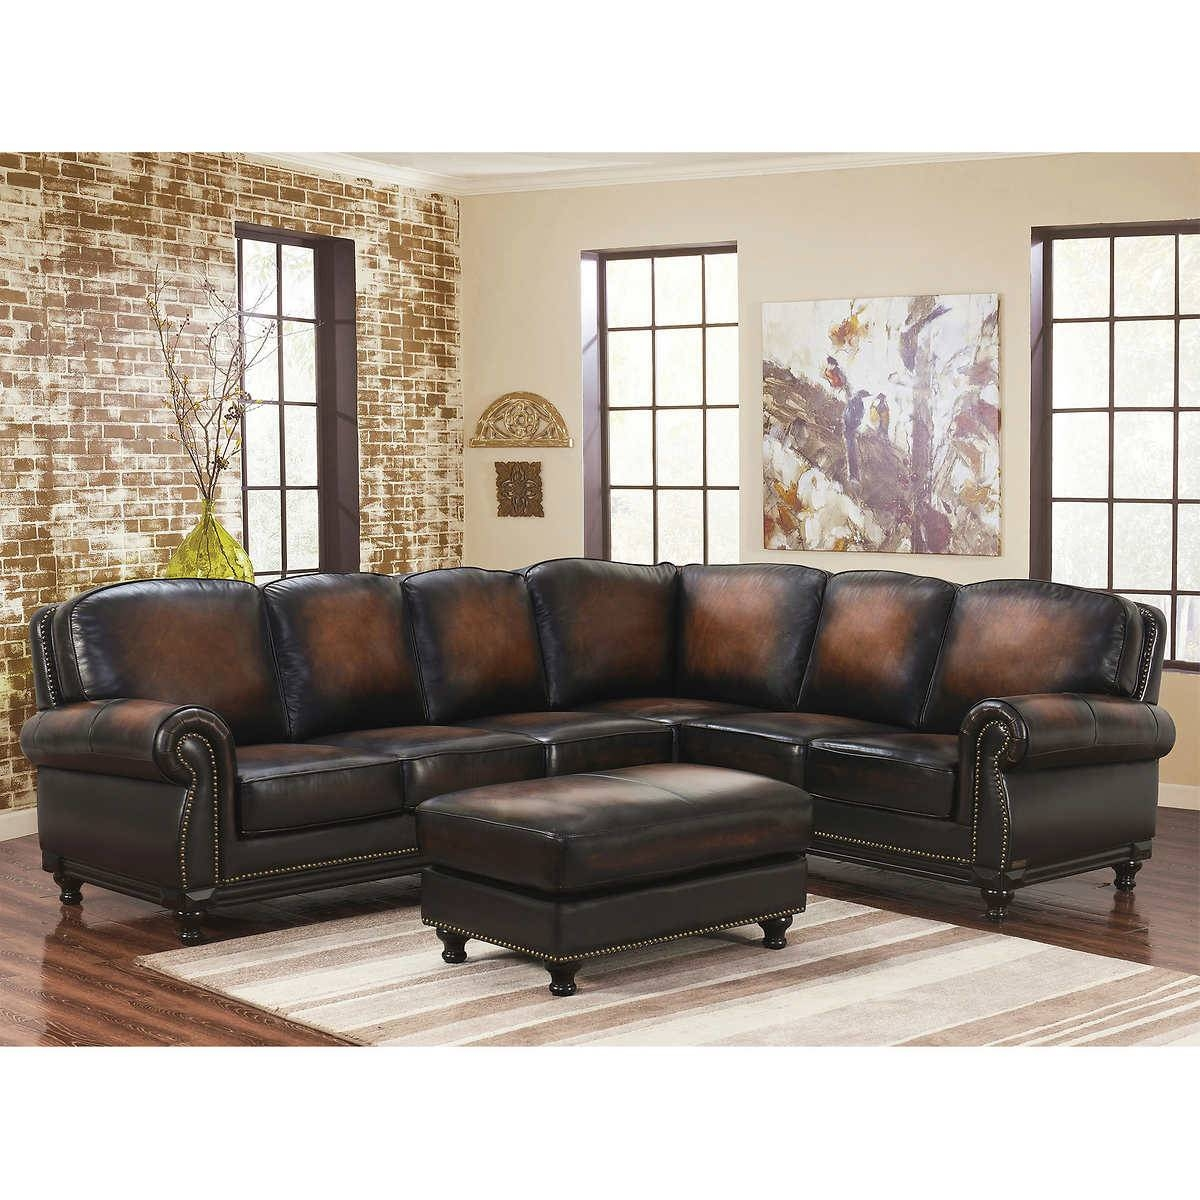 New Real Leather Sectional Sofas 66 For Your Seagrass Sectional Pertaining To Seagrass Sectional Sofas (View 7 of 15)